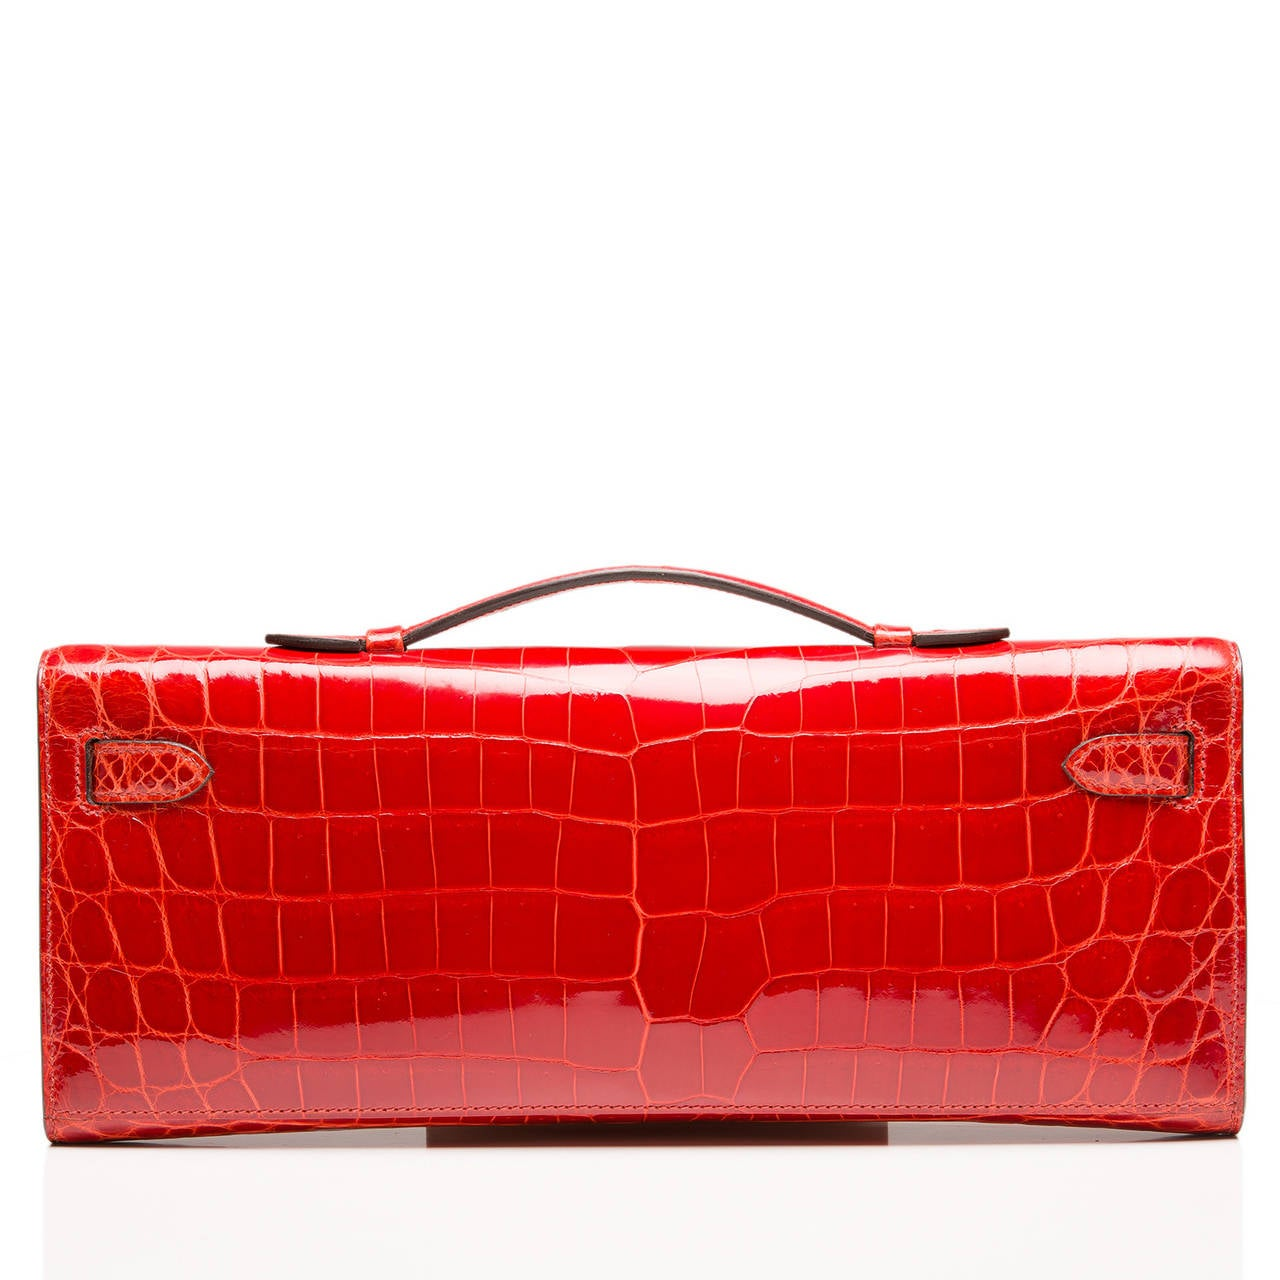 Hermes Sanguine Shiny Porosus Crocodile Kelly Cut In New never worn Condition For Sale In New York, NY